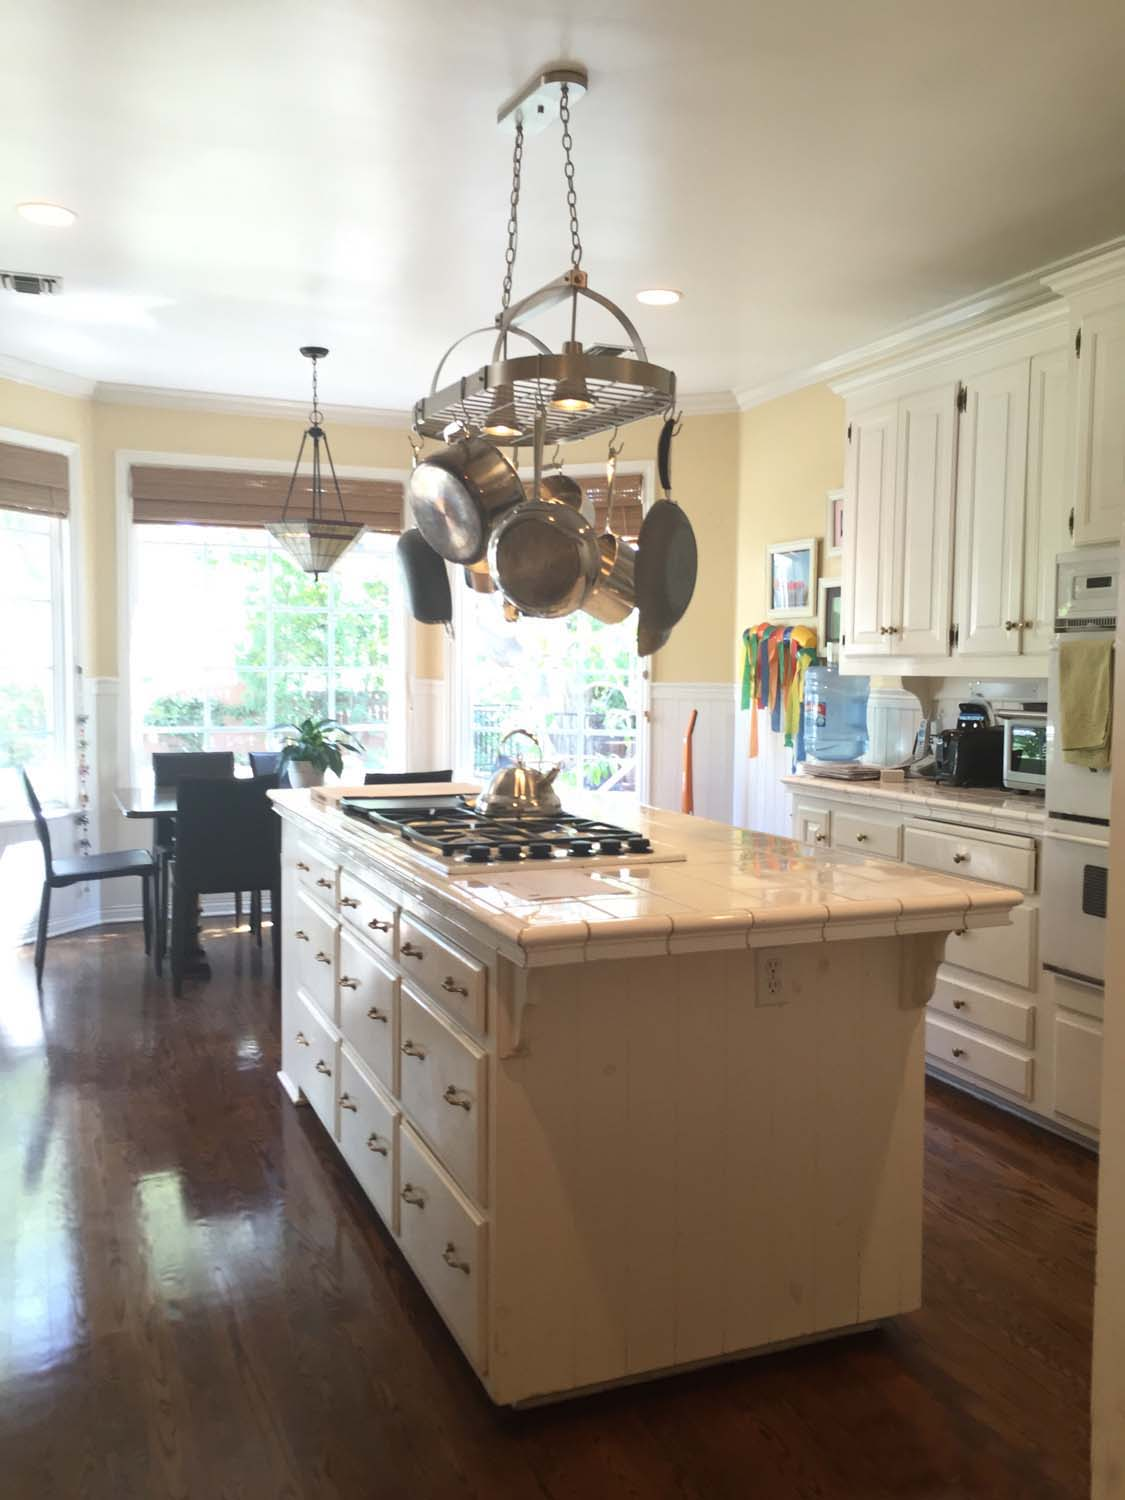 La Cañada-Flintridge Kitchen Makeover - Before